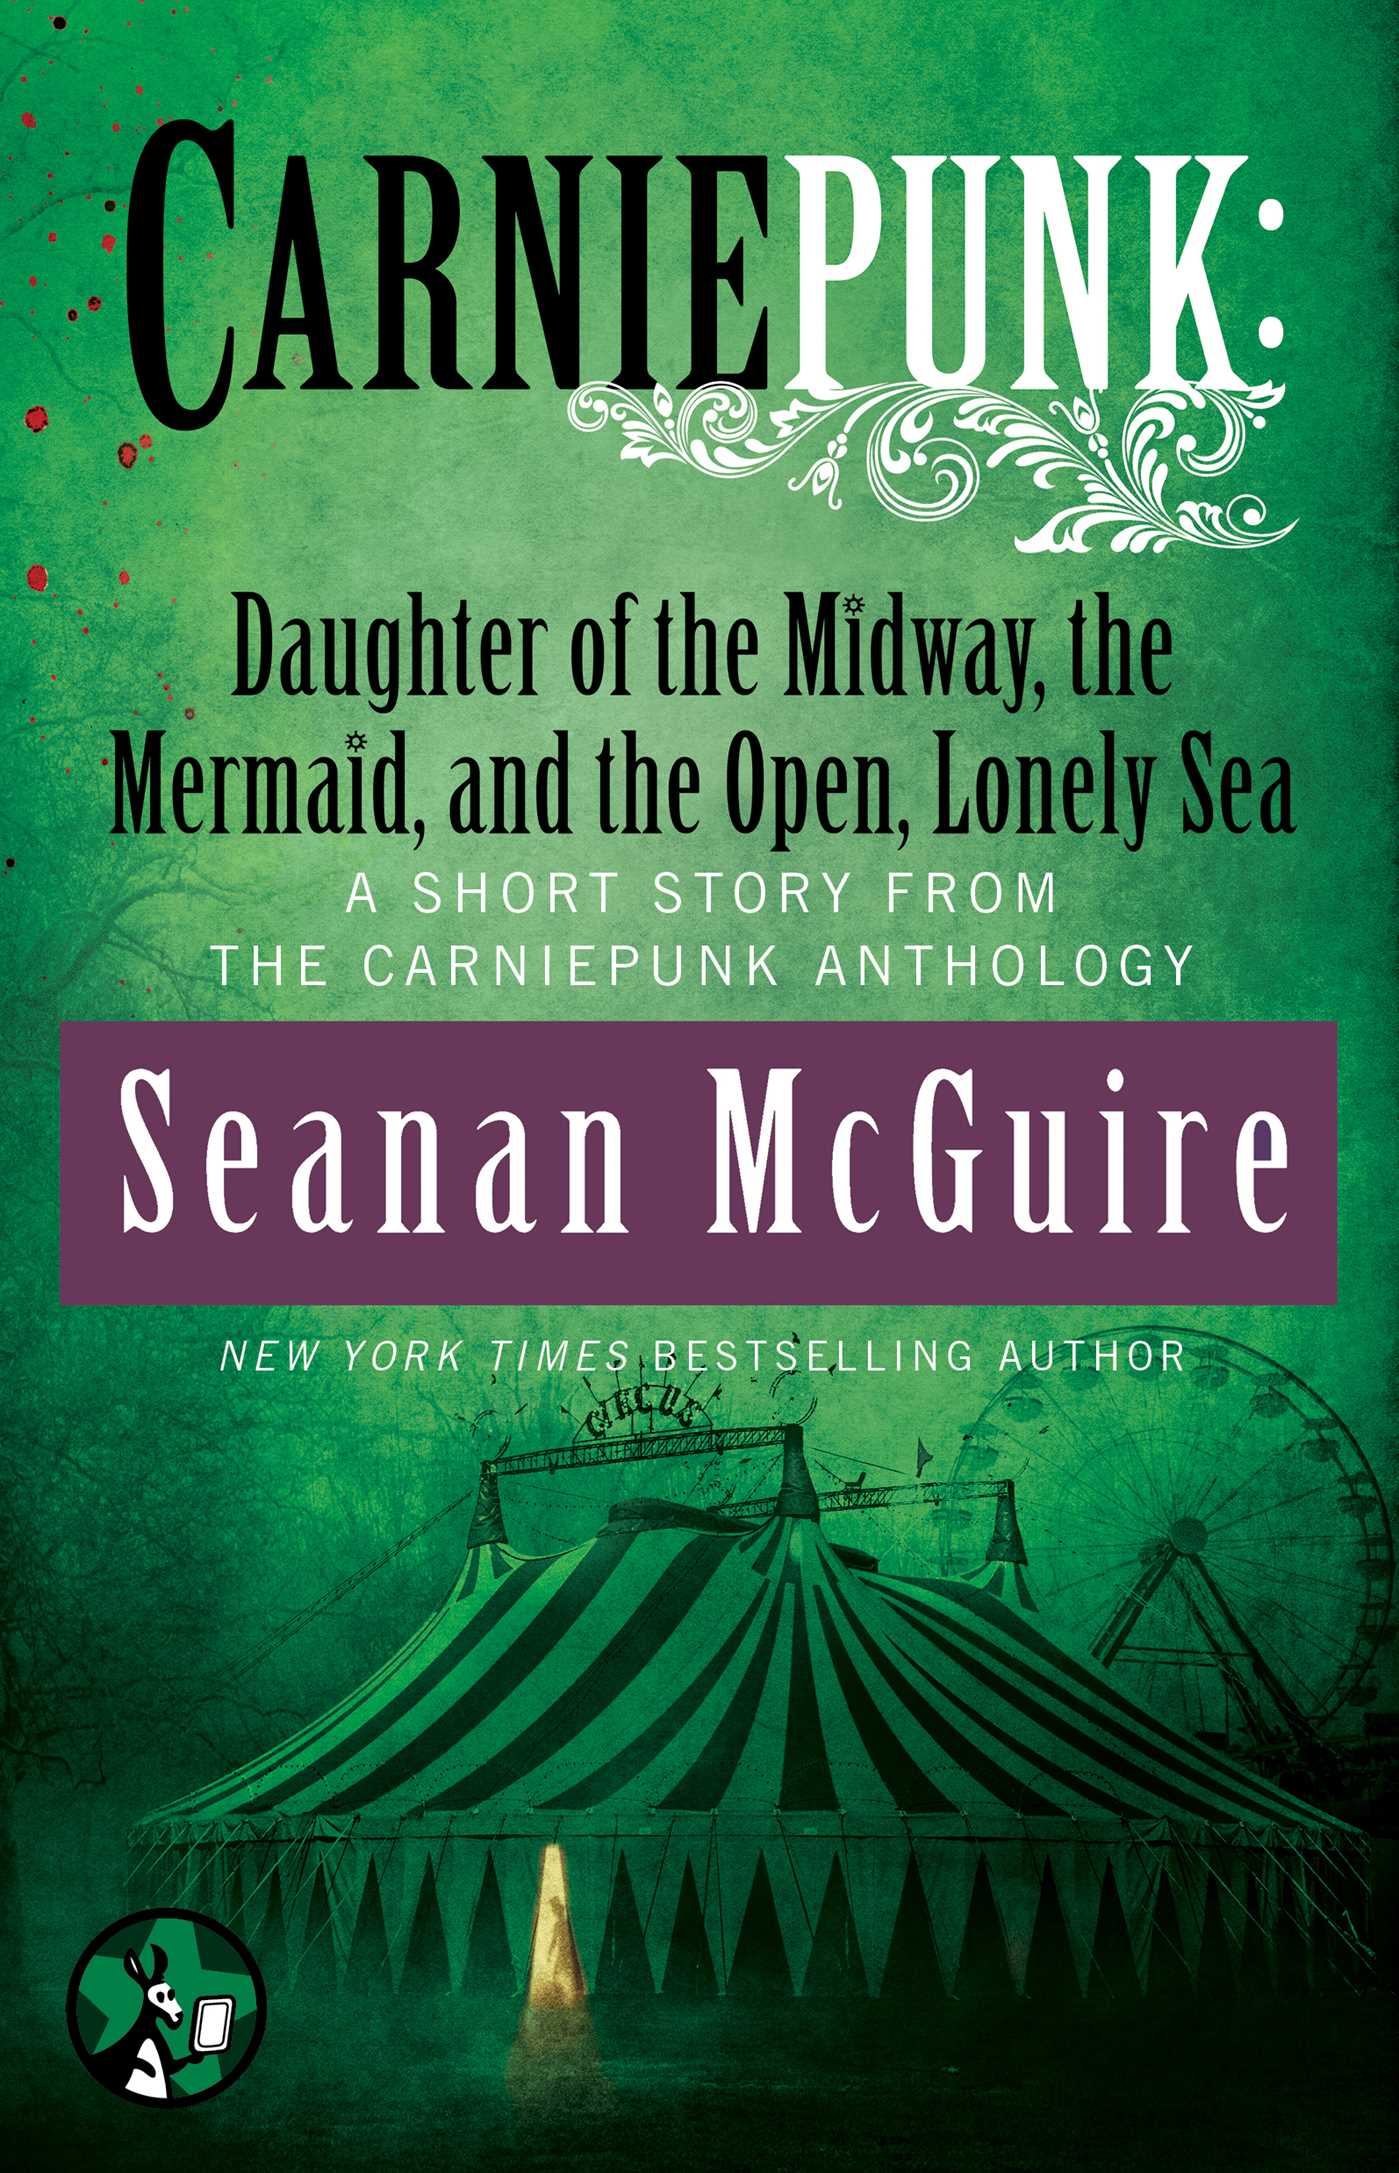 Carniepunk daughter of the midway the mermaid and the open lonely sea 9781476793542 hr